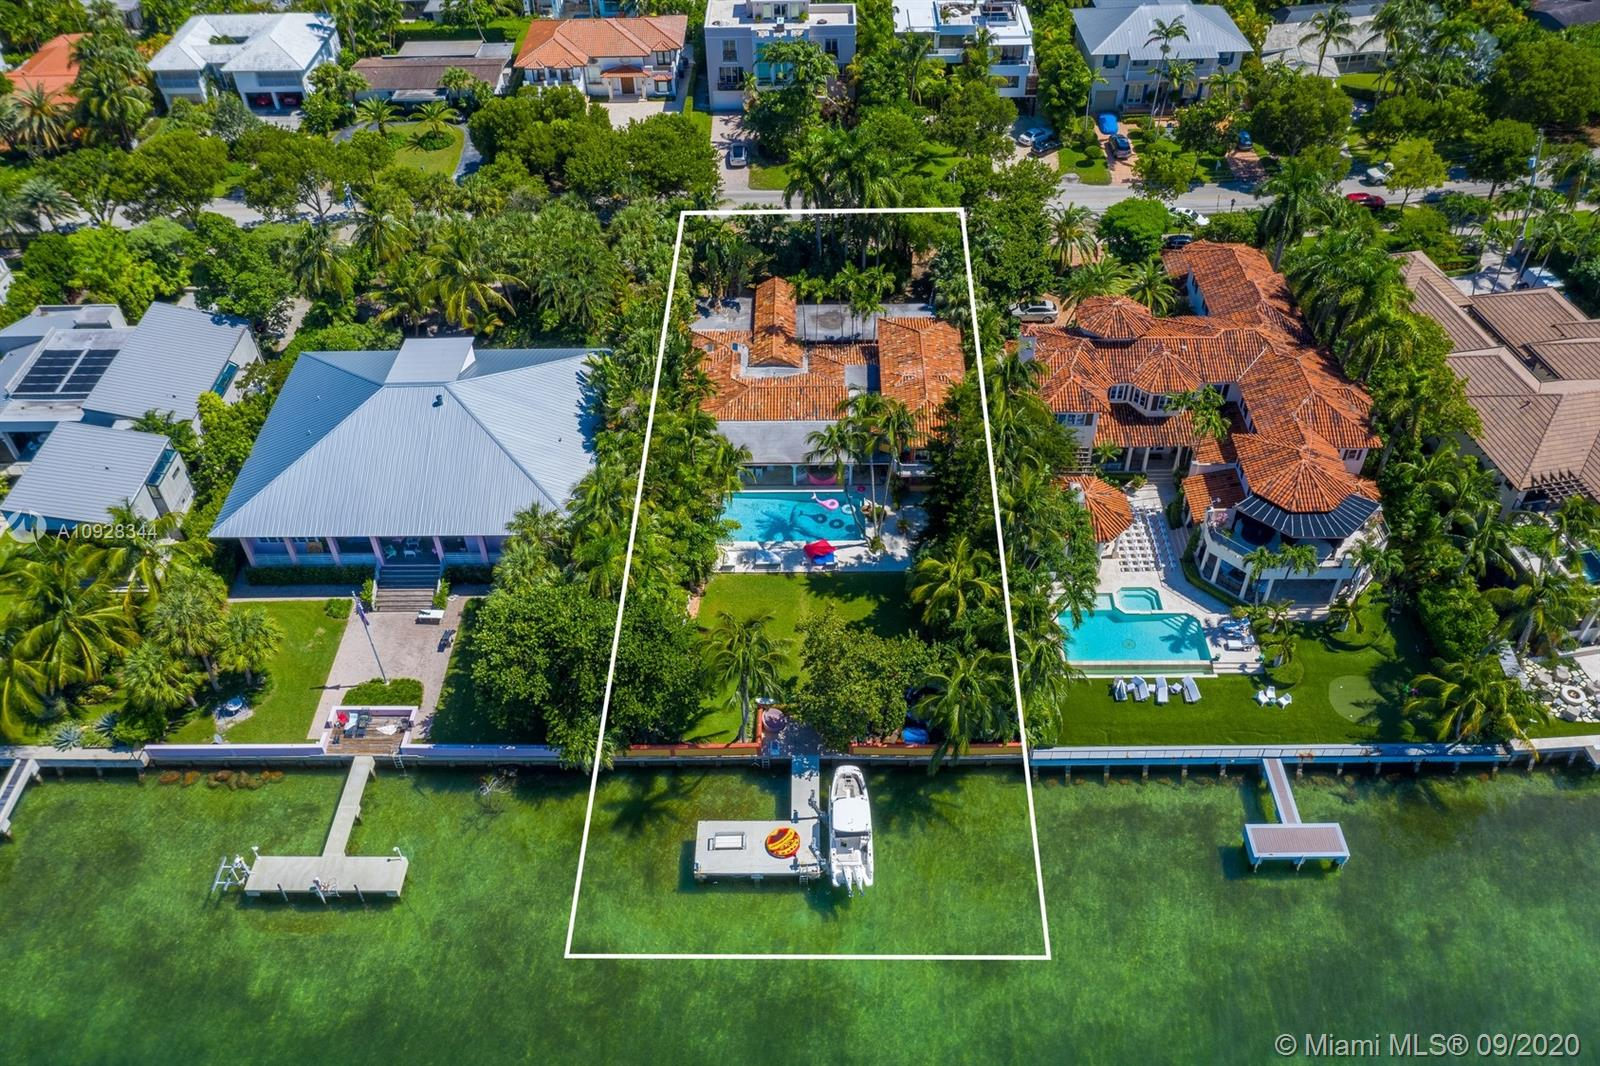 Key Biscayne Miami Real Estate Trends Browse photos, see new properties, get open house info, and research neighborhoods on trulia. miami real estate trends